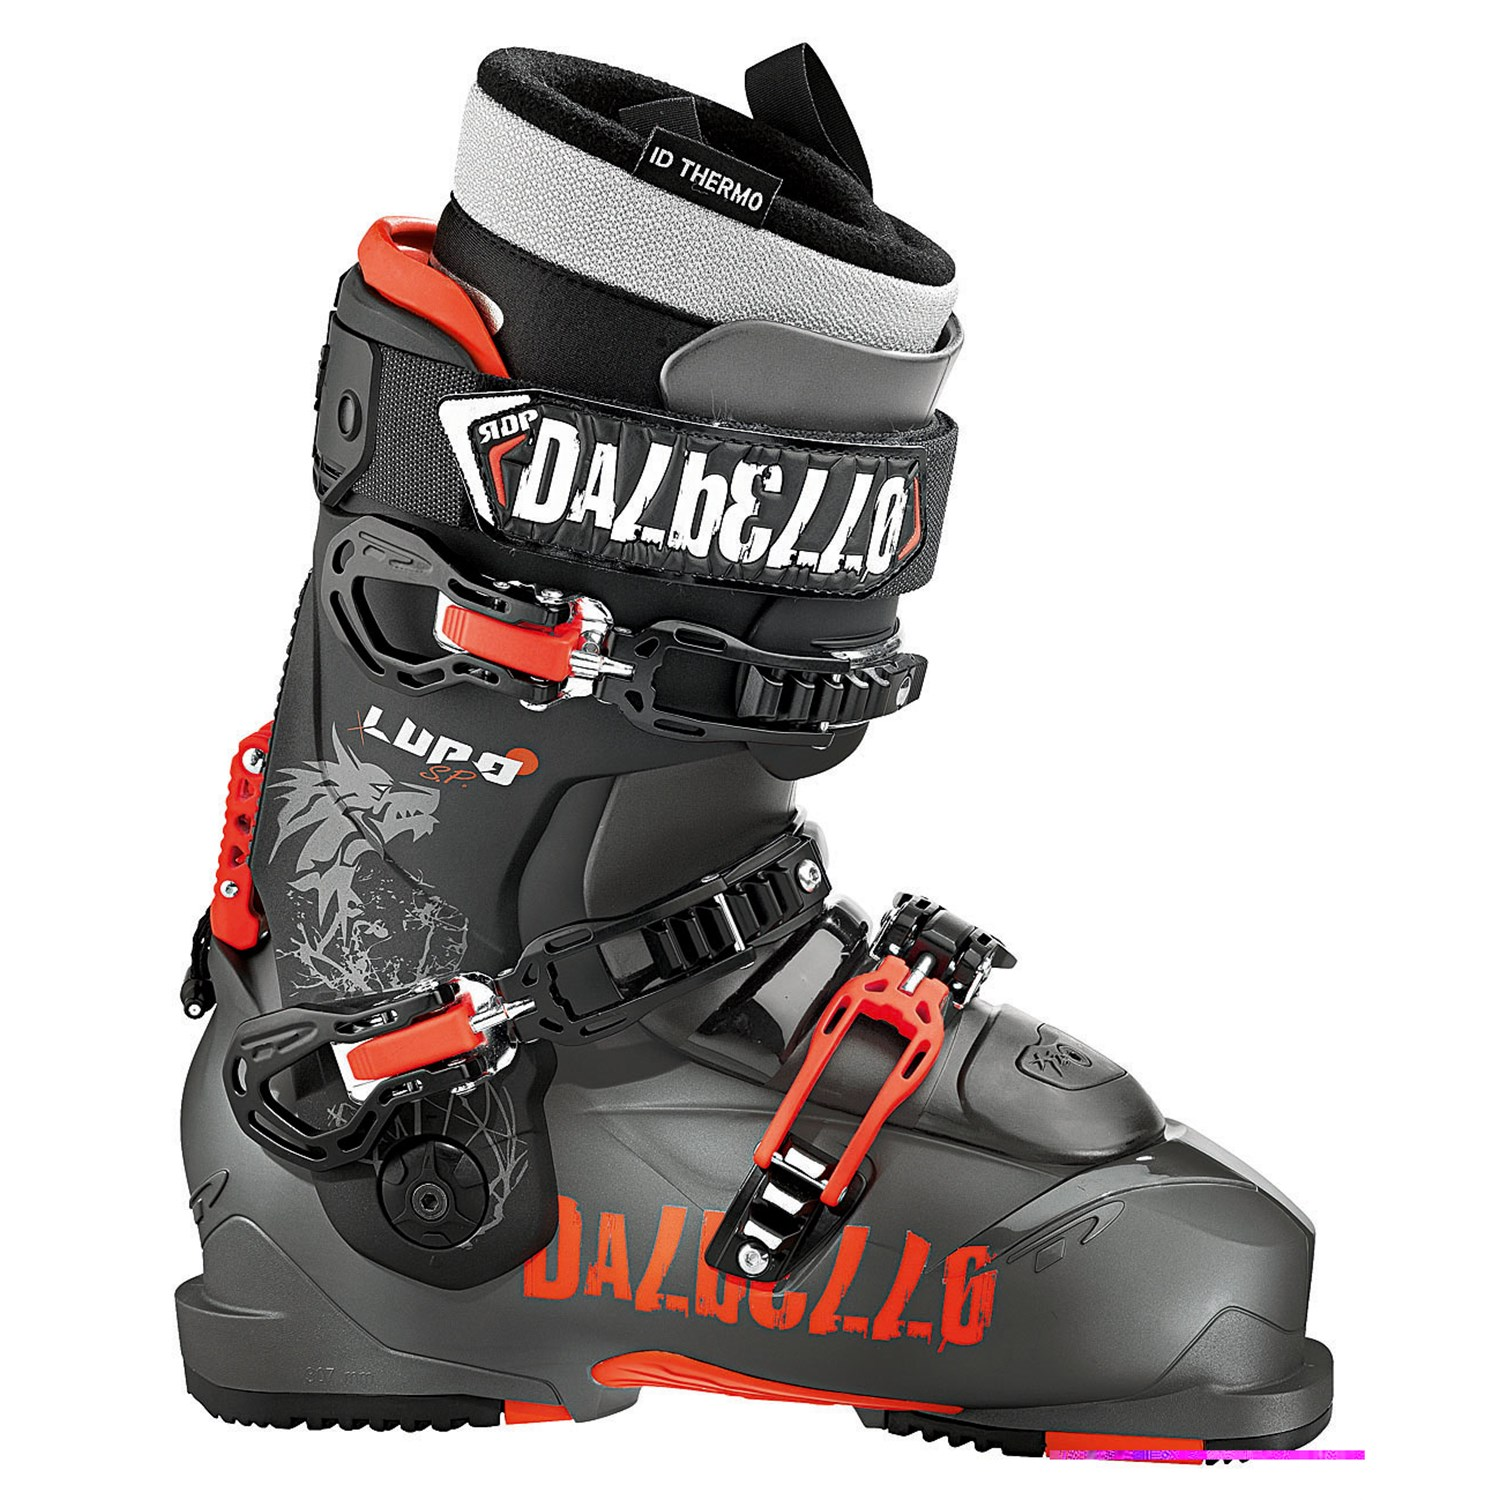 Sam Shaheen reviews the Dalbello Lupo for Blister Gear Review